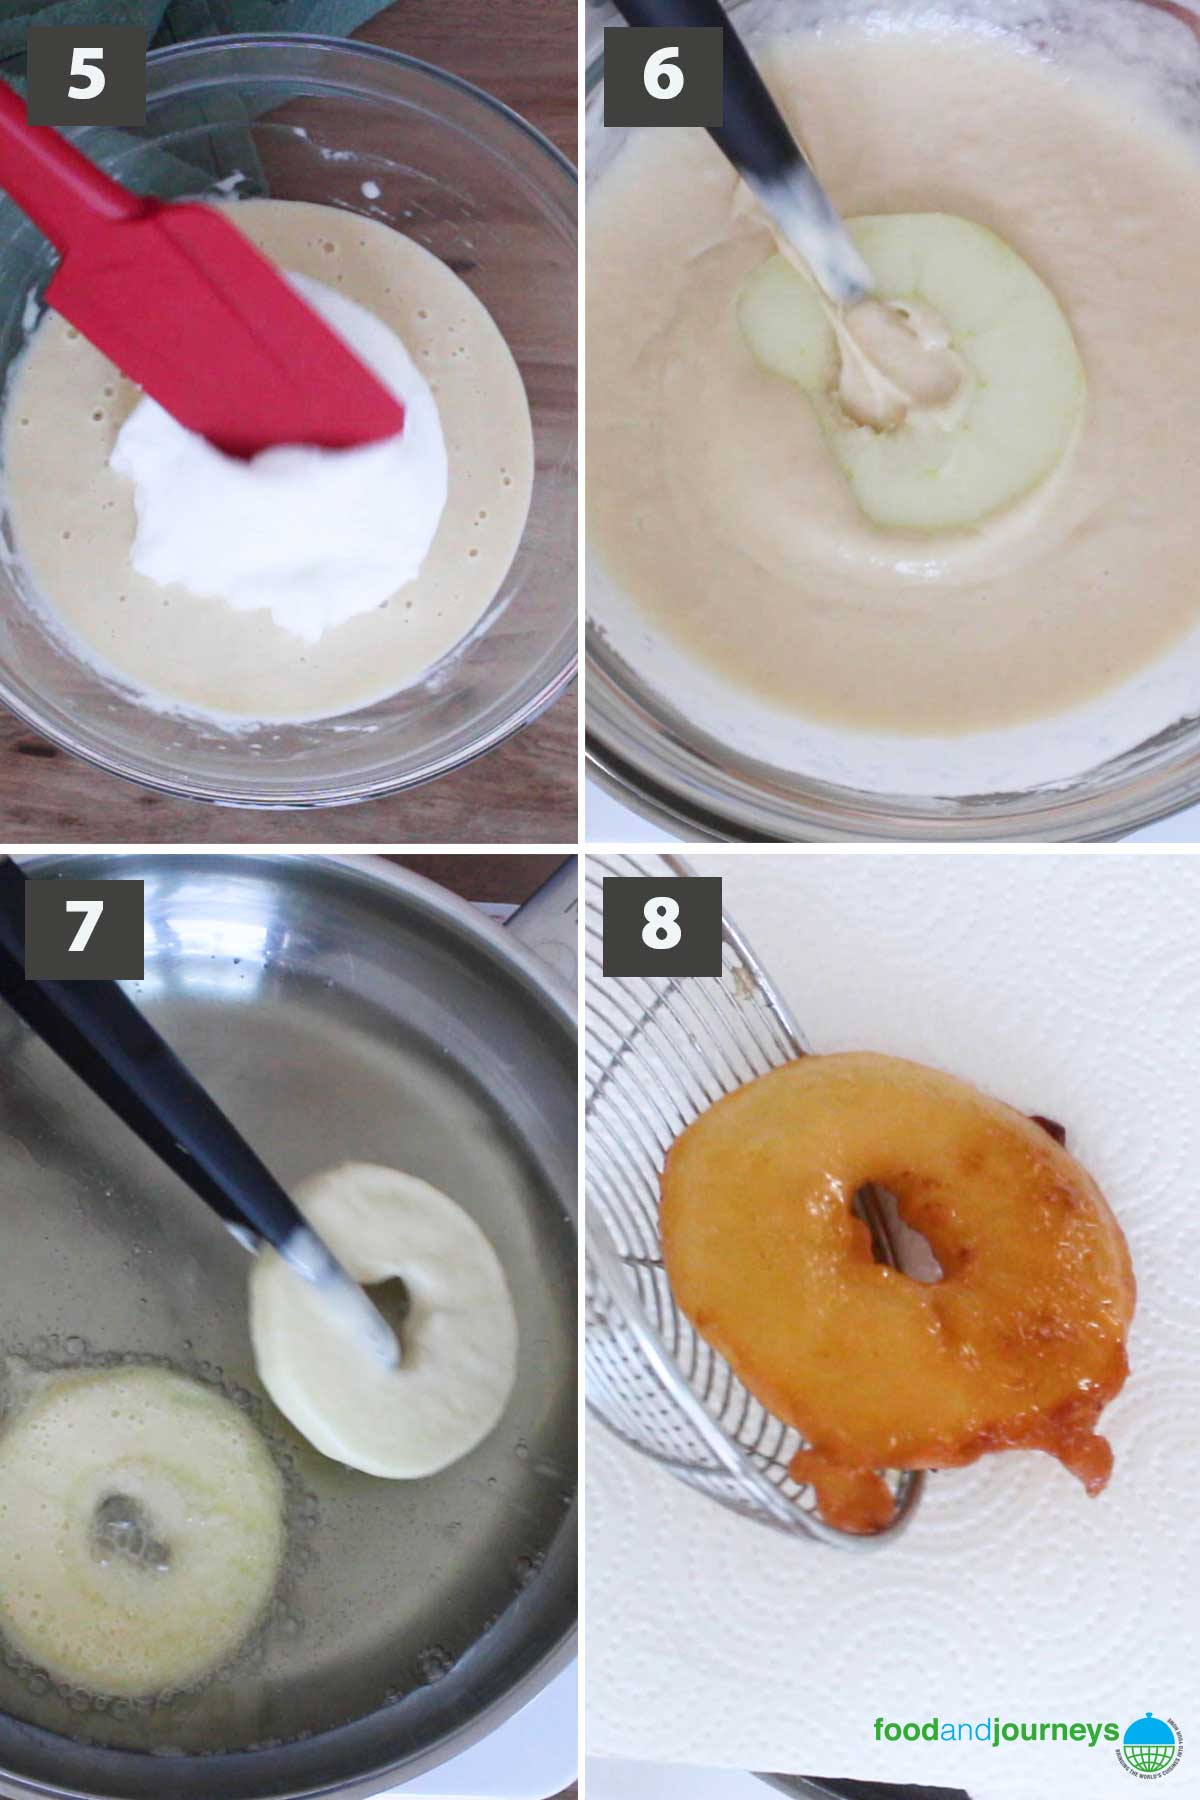 Updated second part of a collage of images showing the step by step proces on how to prepare fried apples.